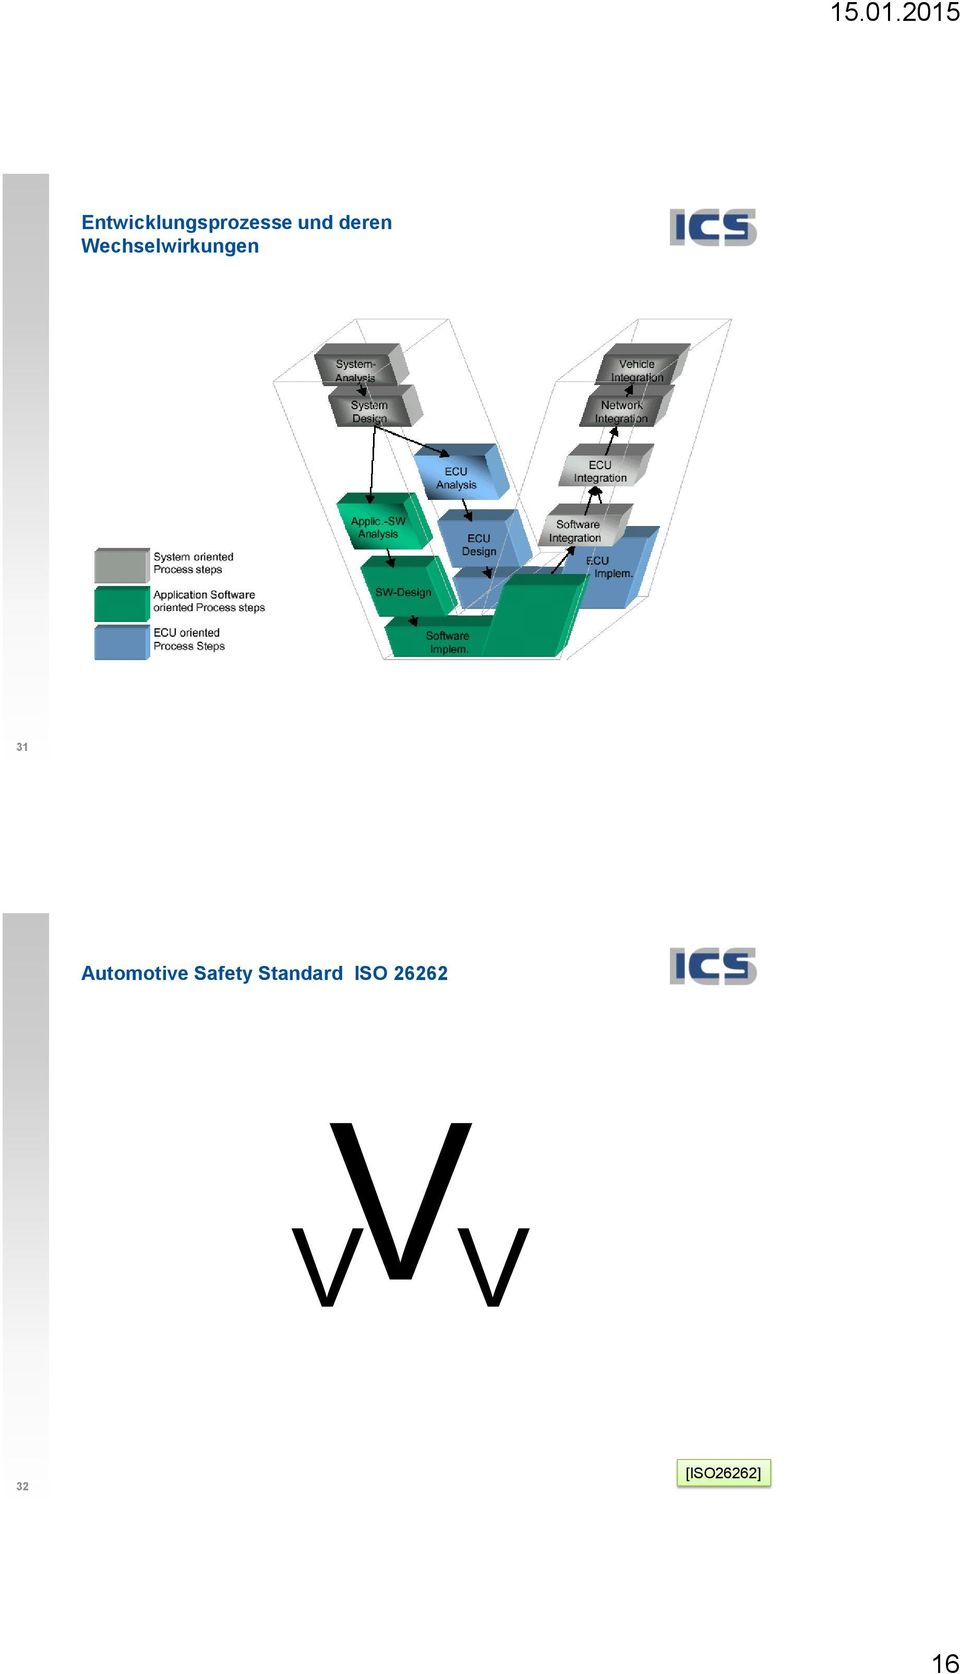 Automotive Safety Standard